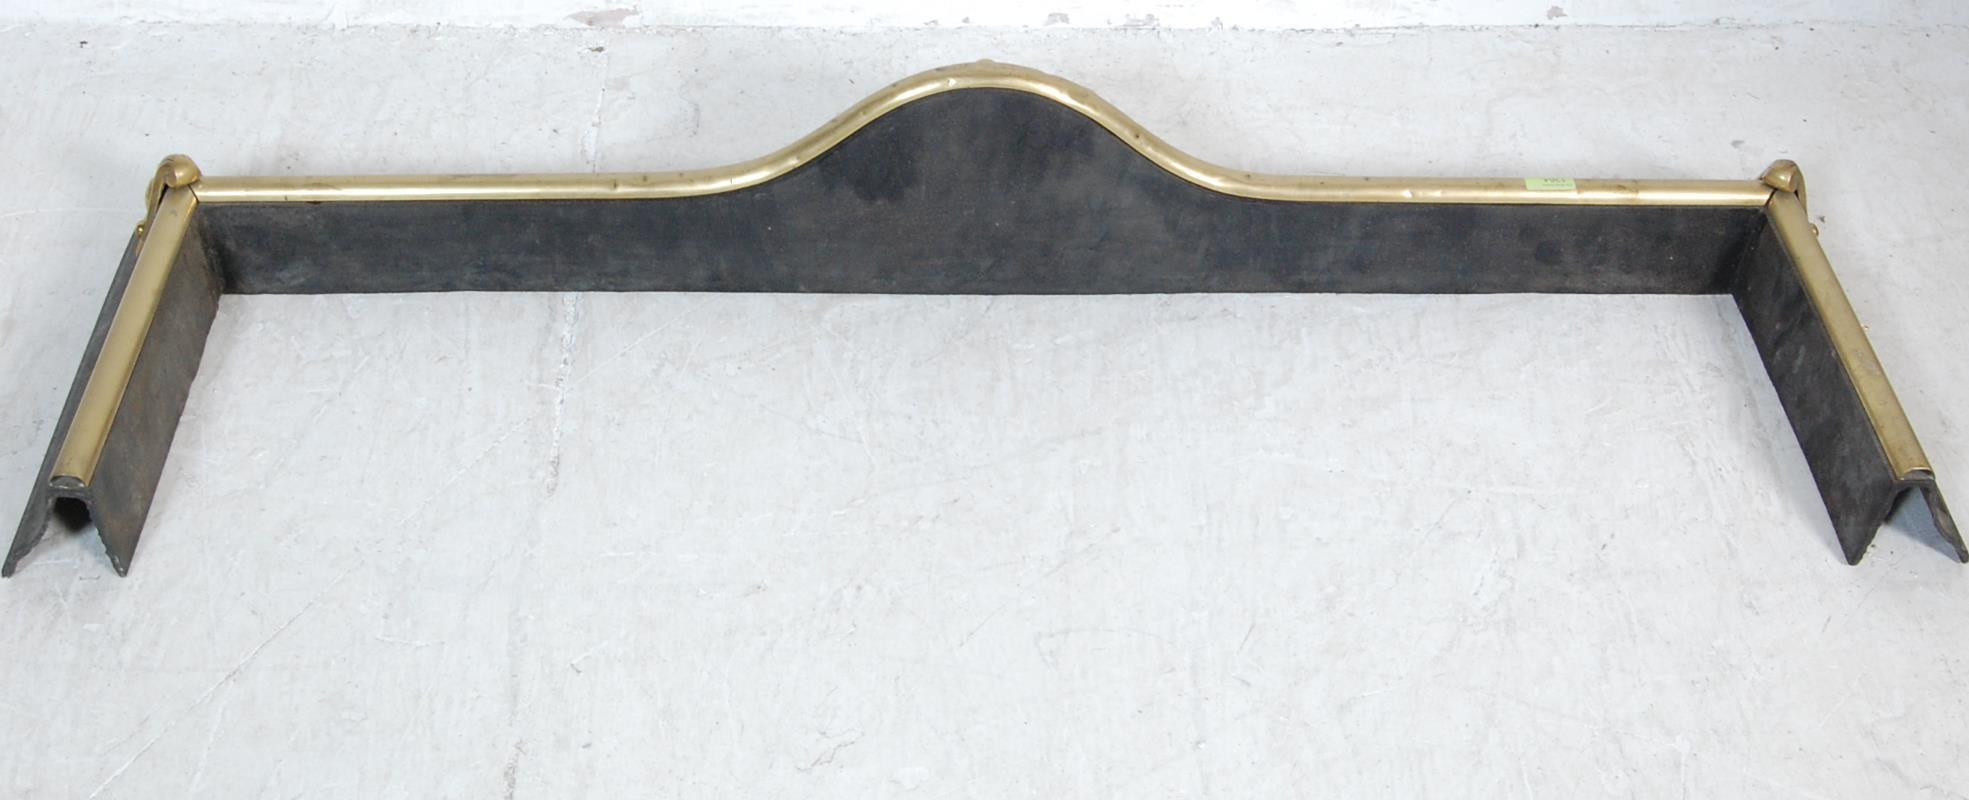 20TH CENTURY ART NOUVEAU STYLE BRASS AND IRON FIRE FENDER - Image 5 of 5